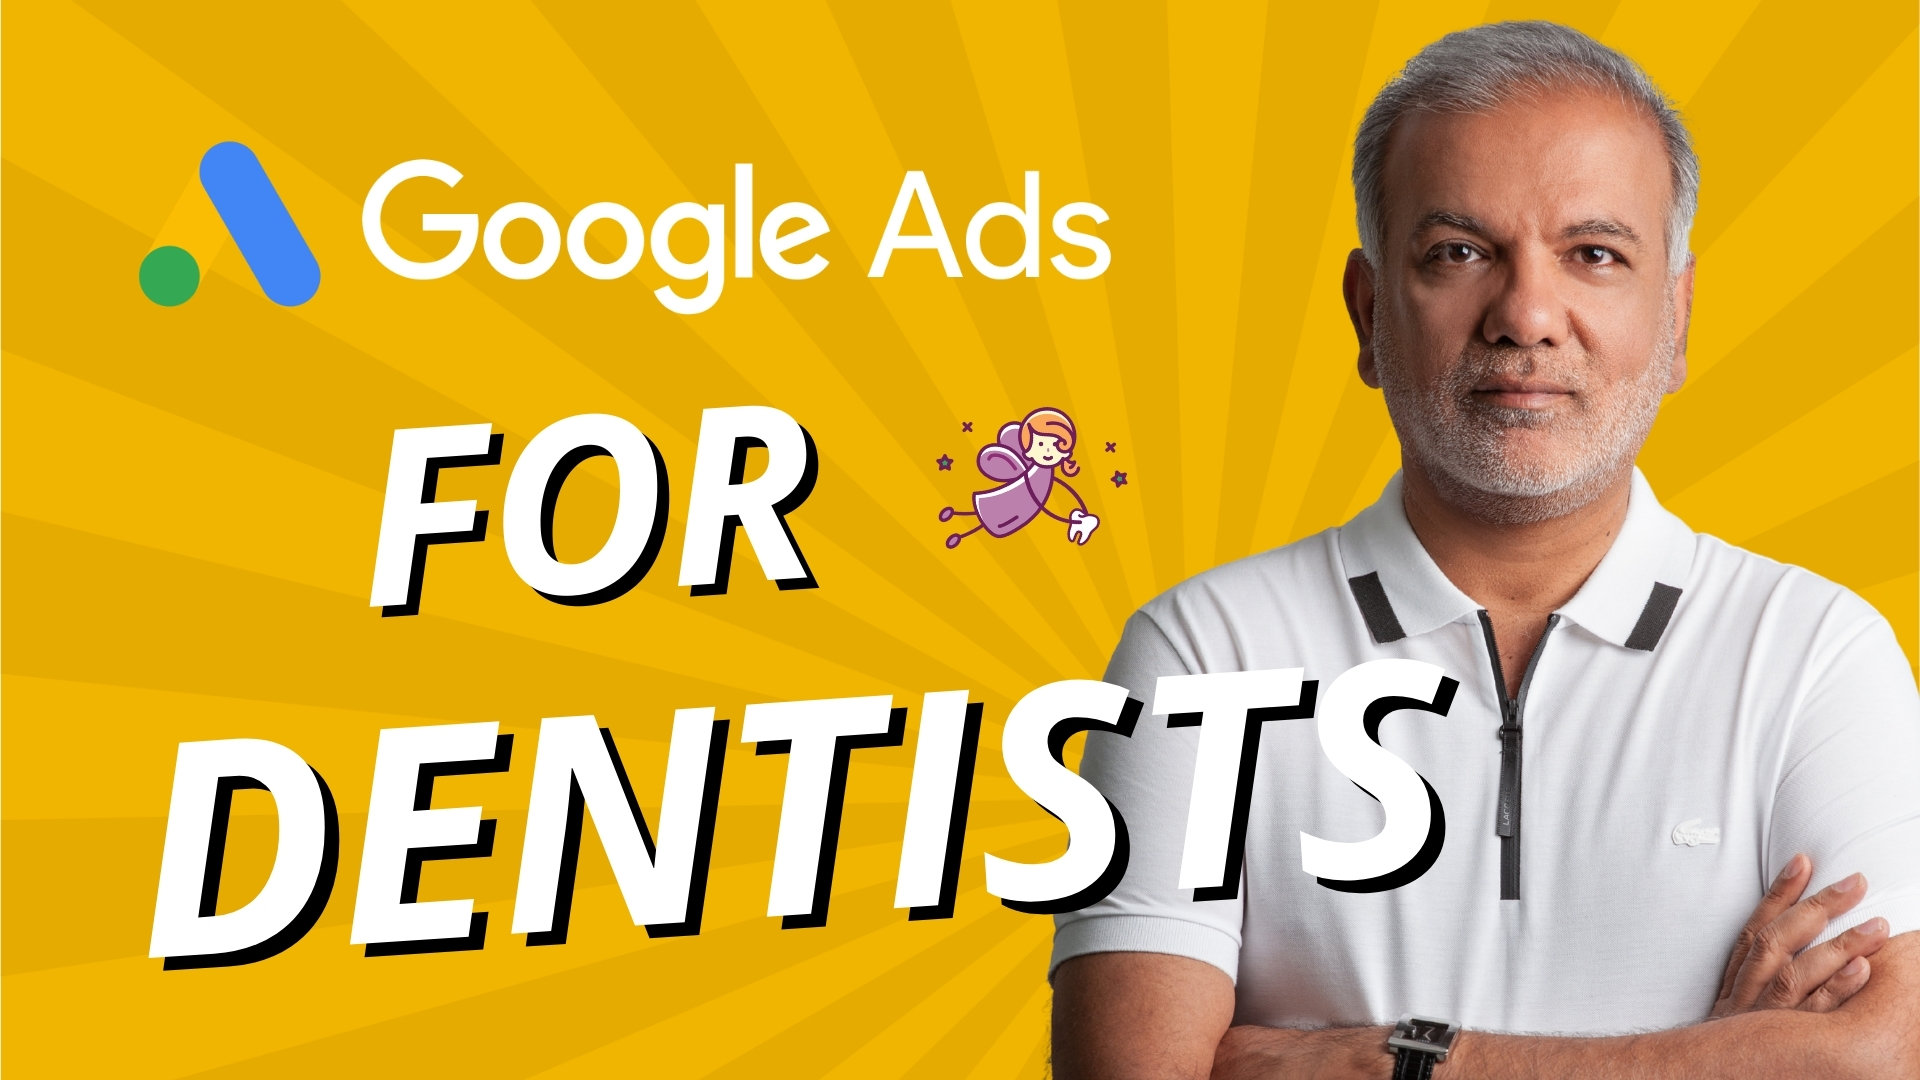 The Complete Guide To Google Ads For Dentists And Dental Practices